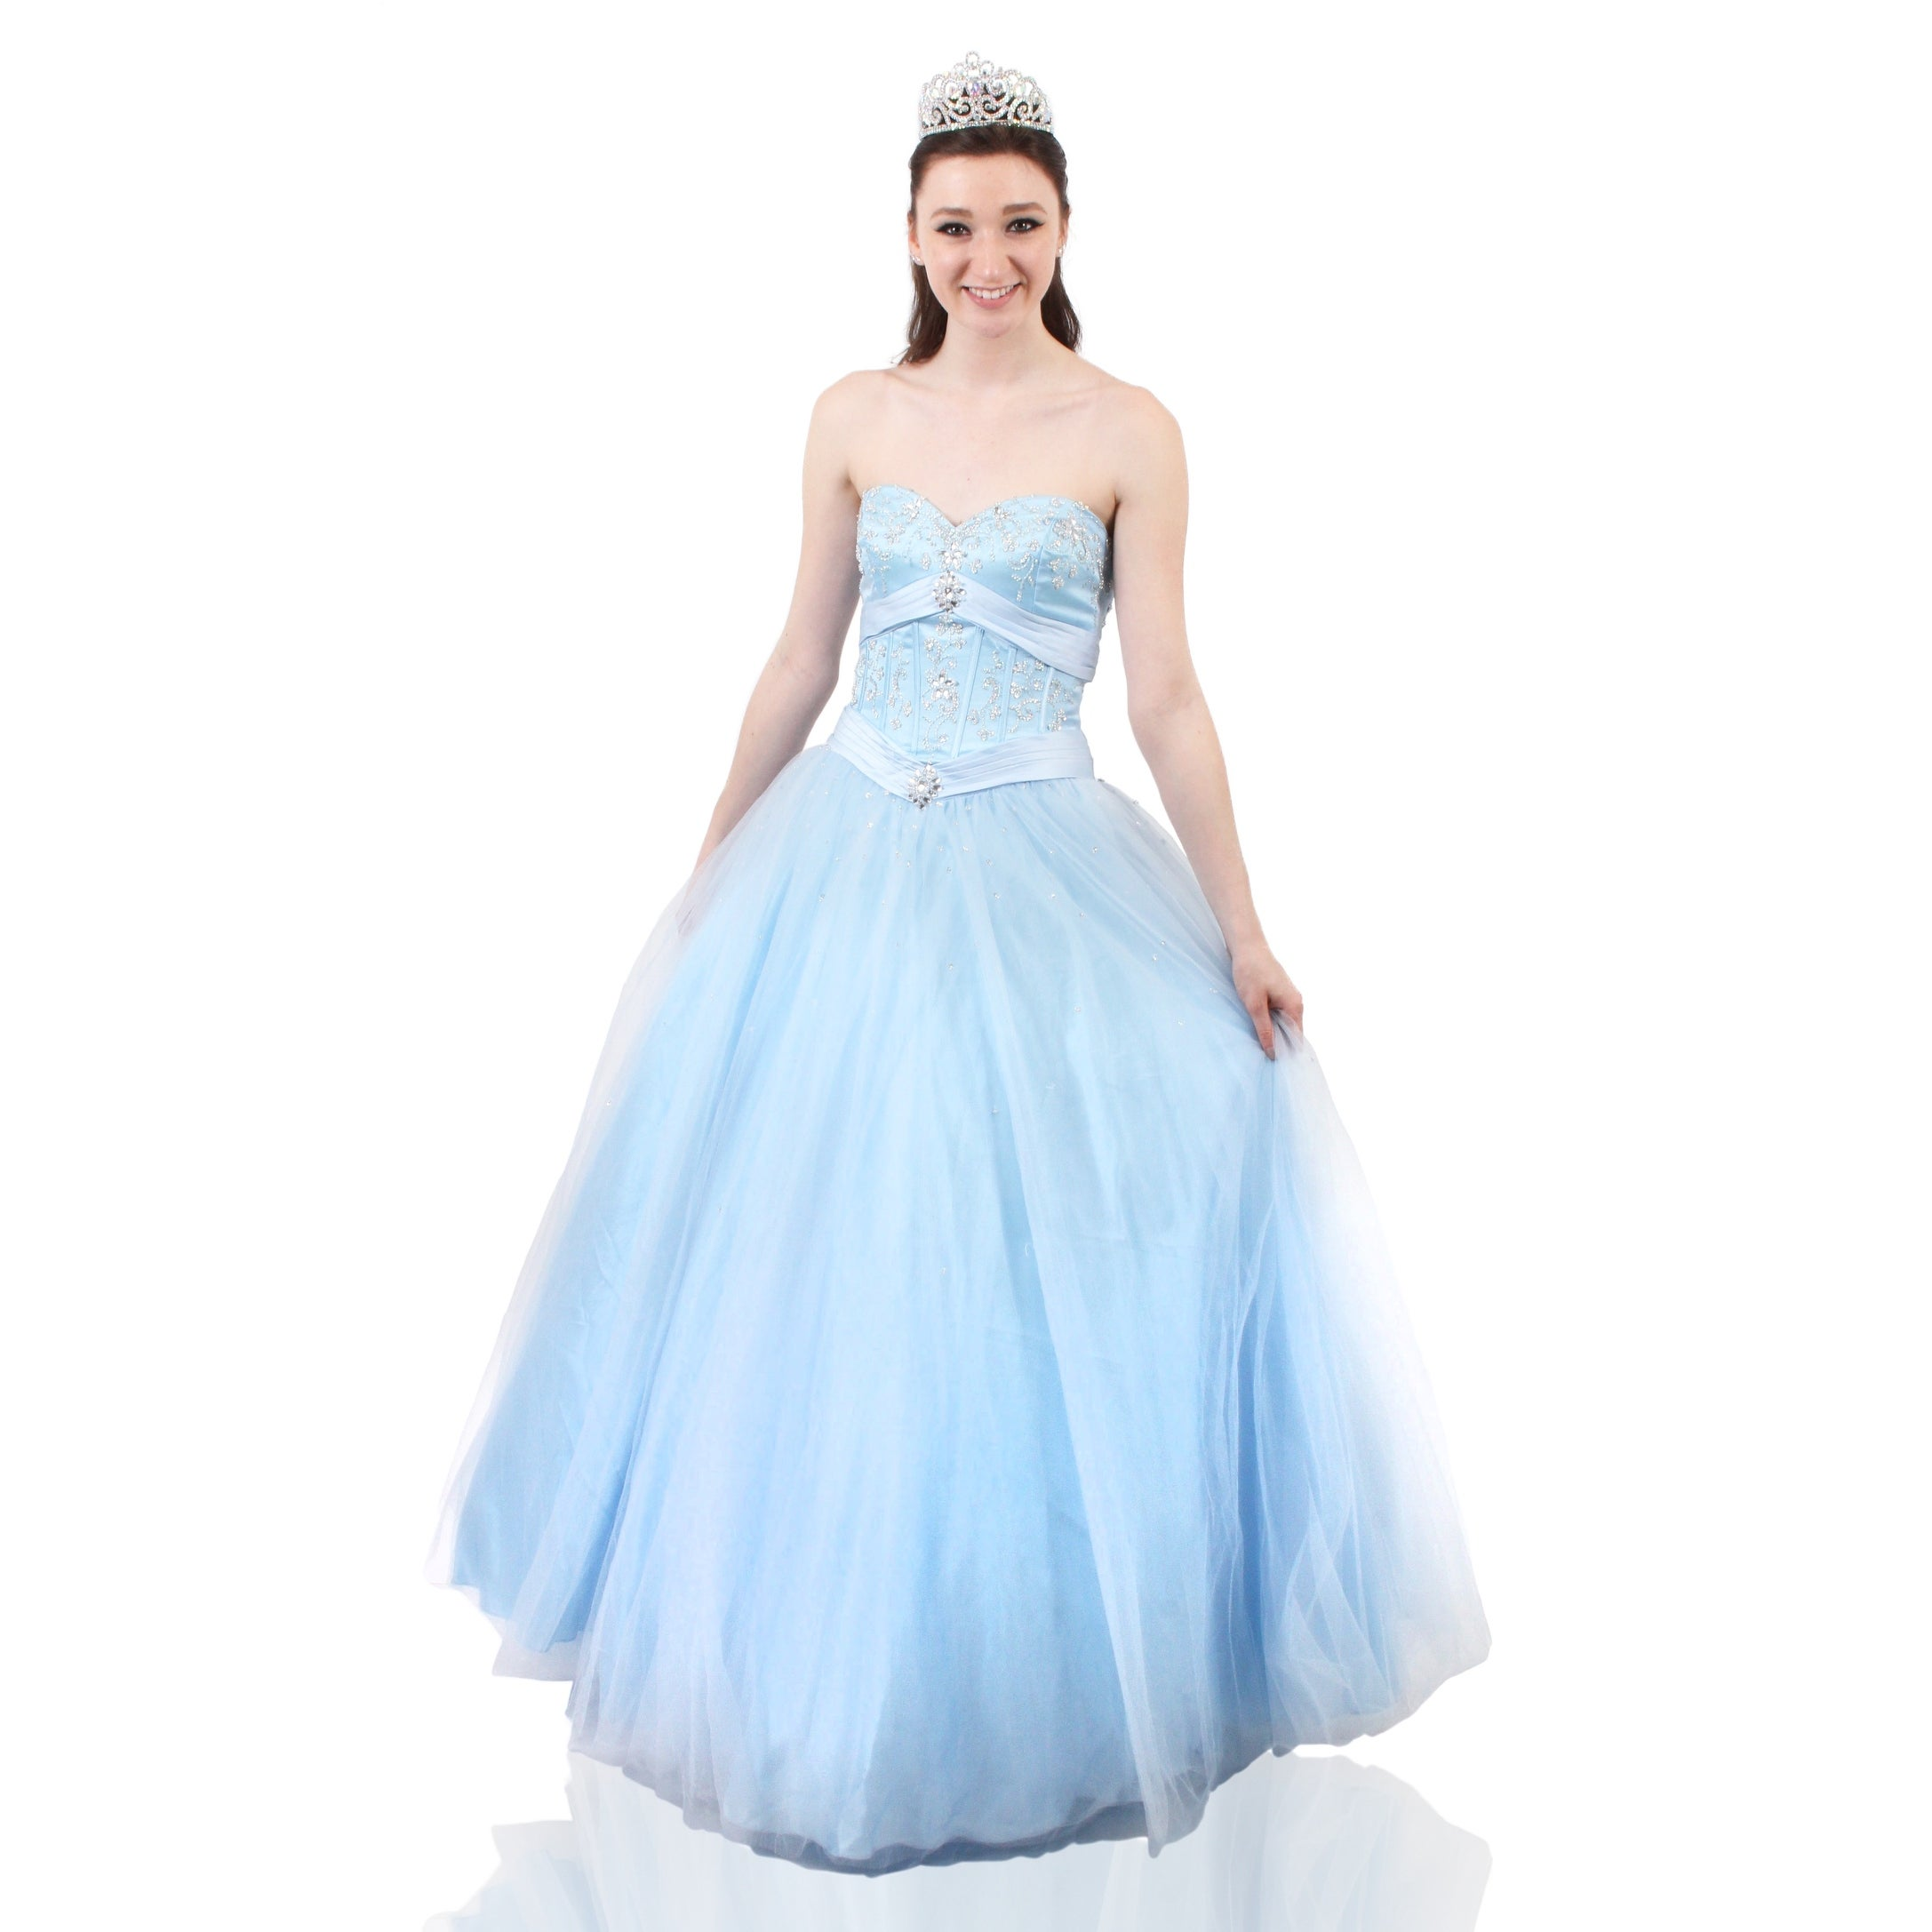 2b6f2a167c9 Shop Estelle s Sweet 16 Dresses - Free Shipping Today - Overstock - 11849421